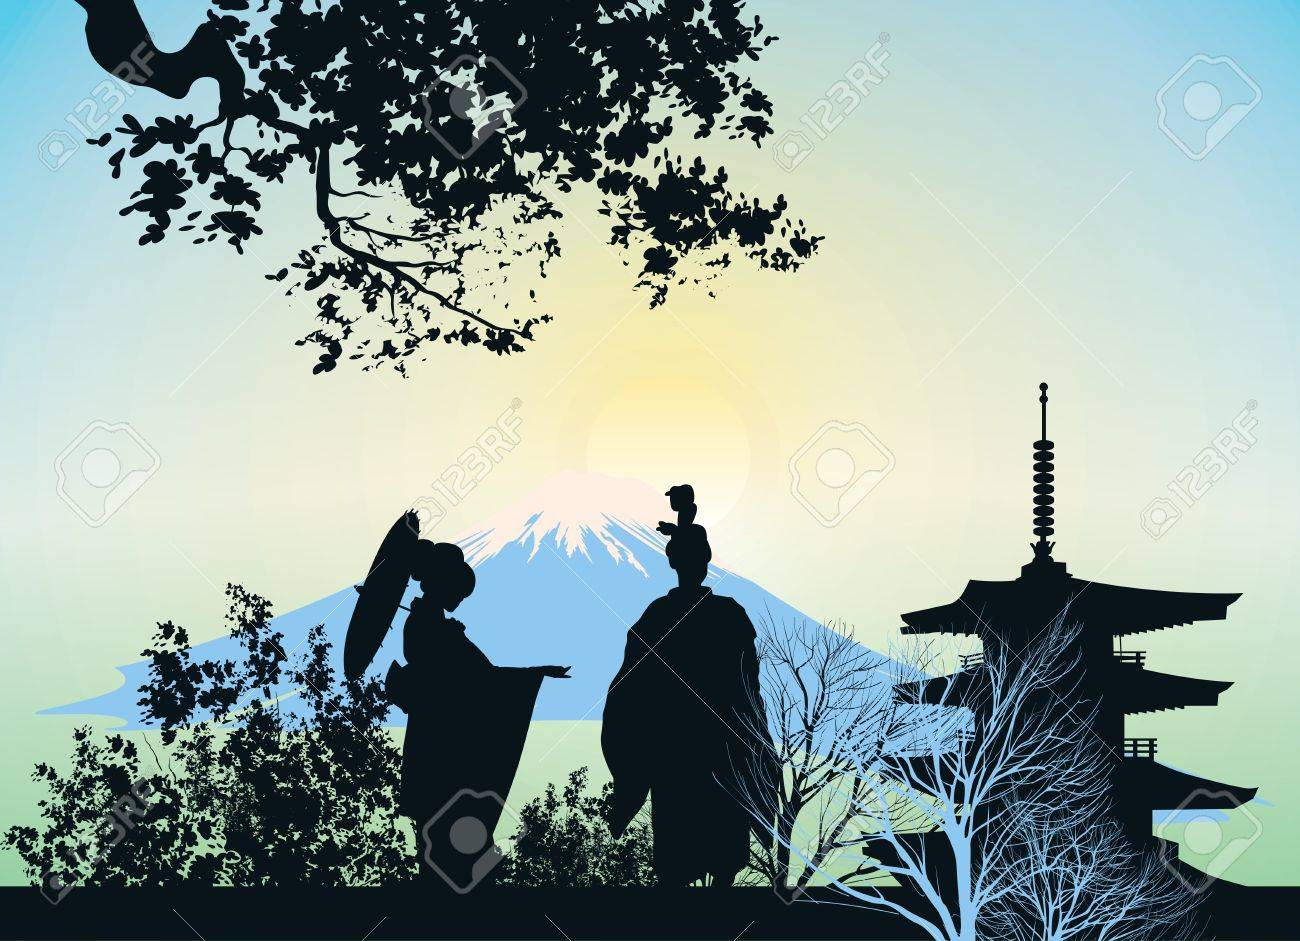 beautiful picture of a geisha, mountains and trees Stock Vector - 13922109